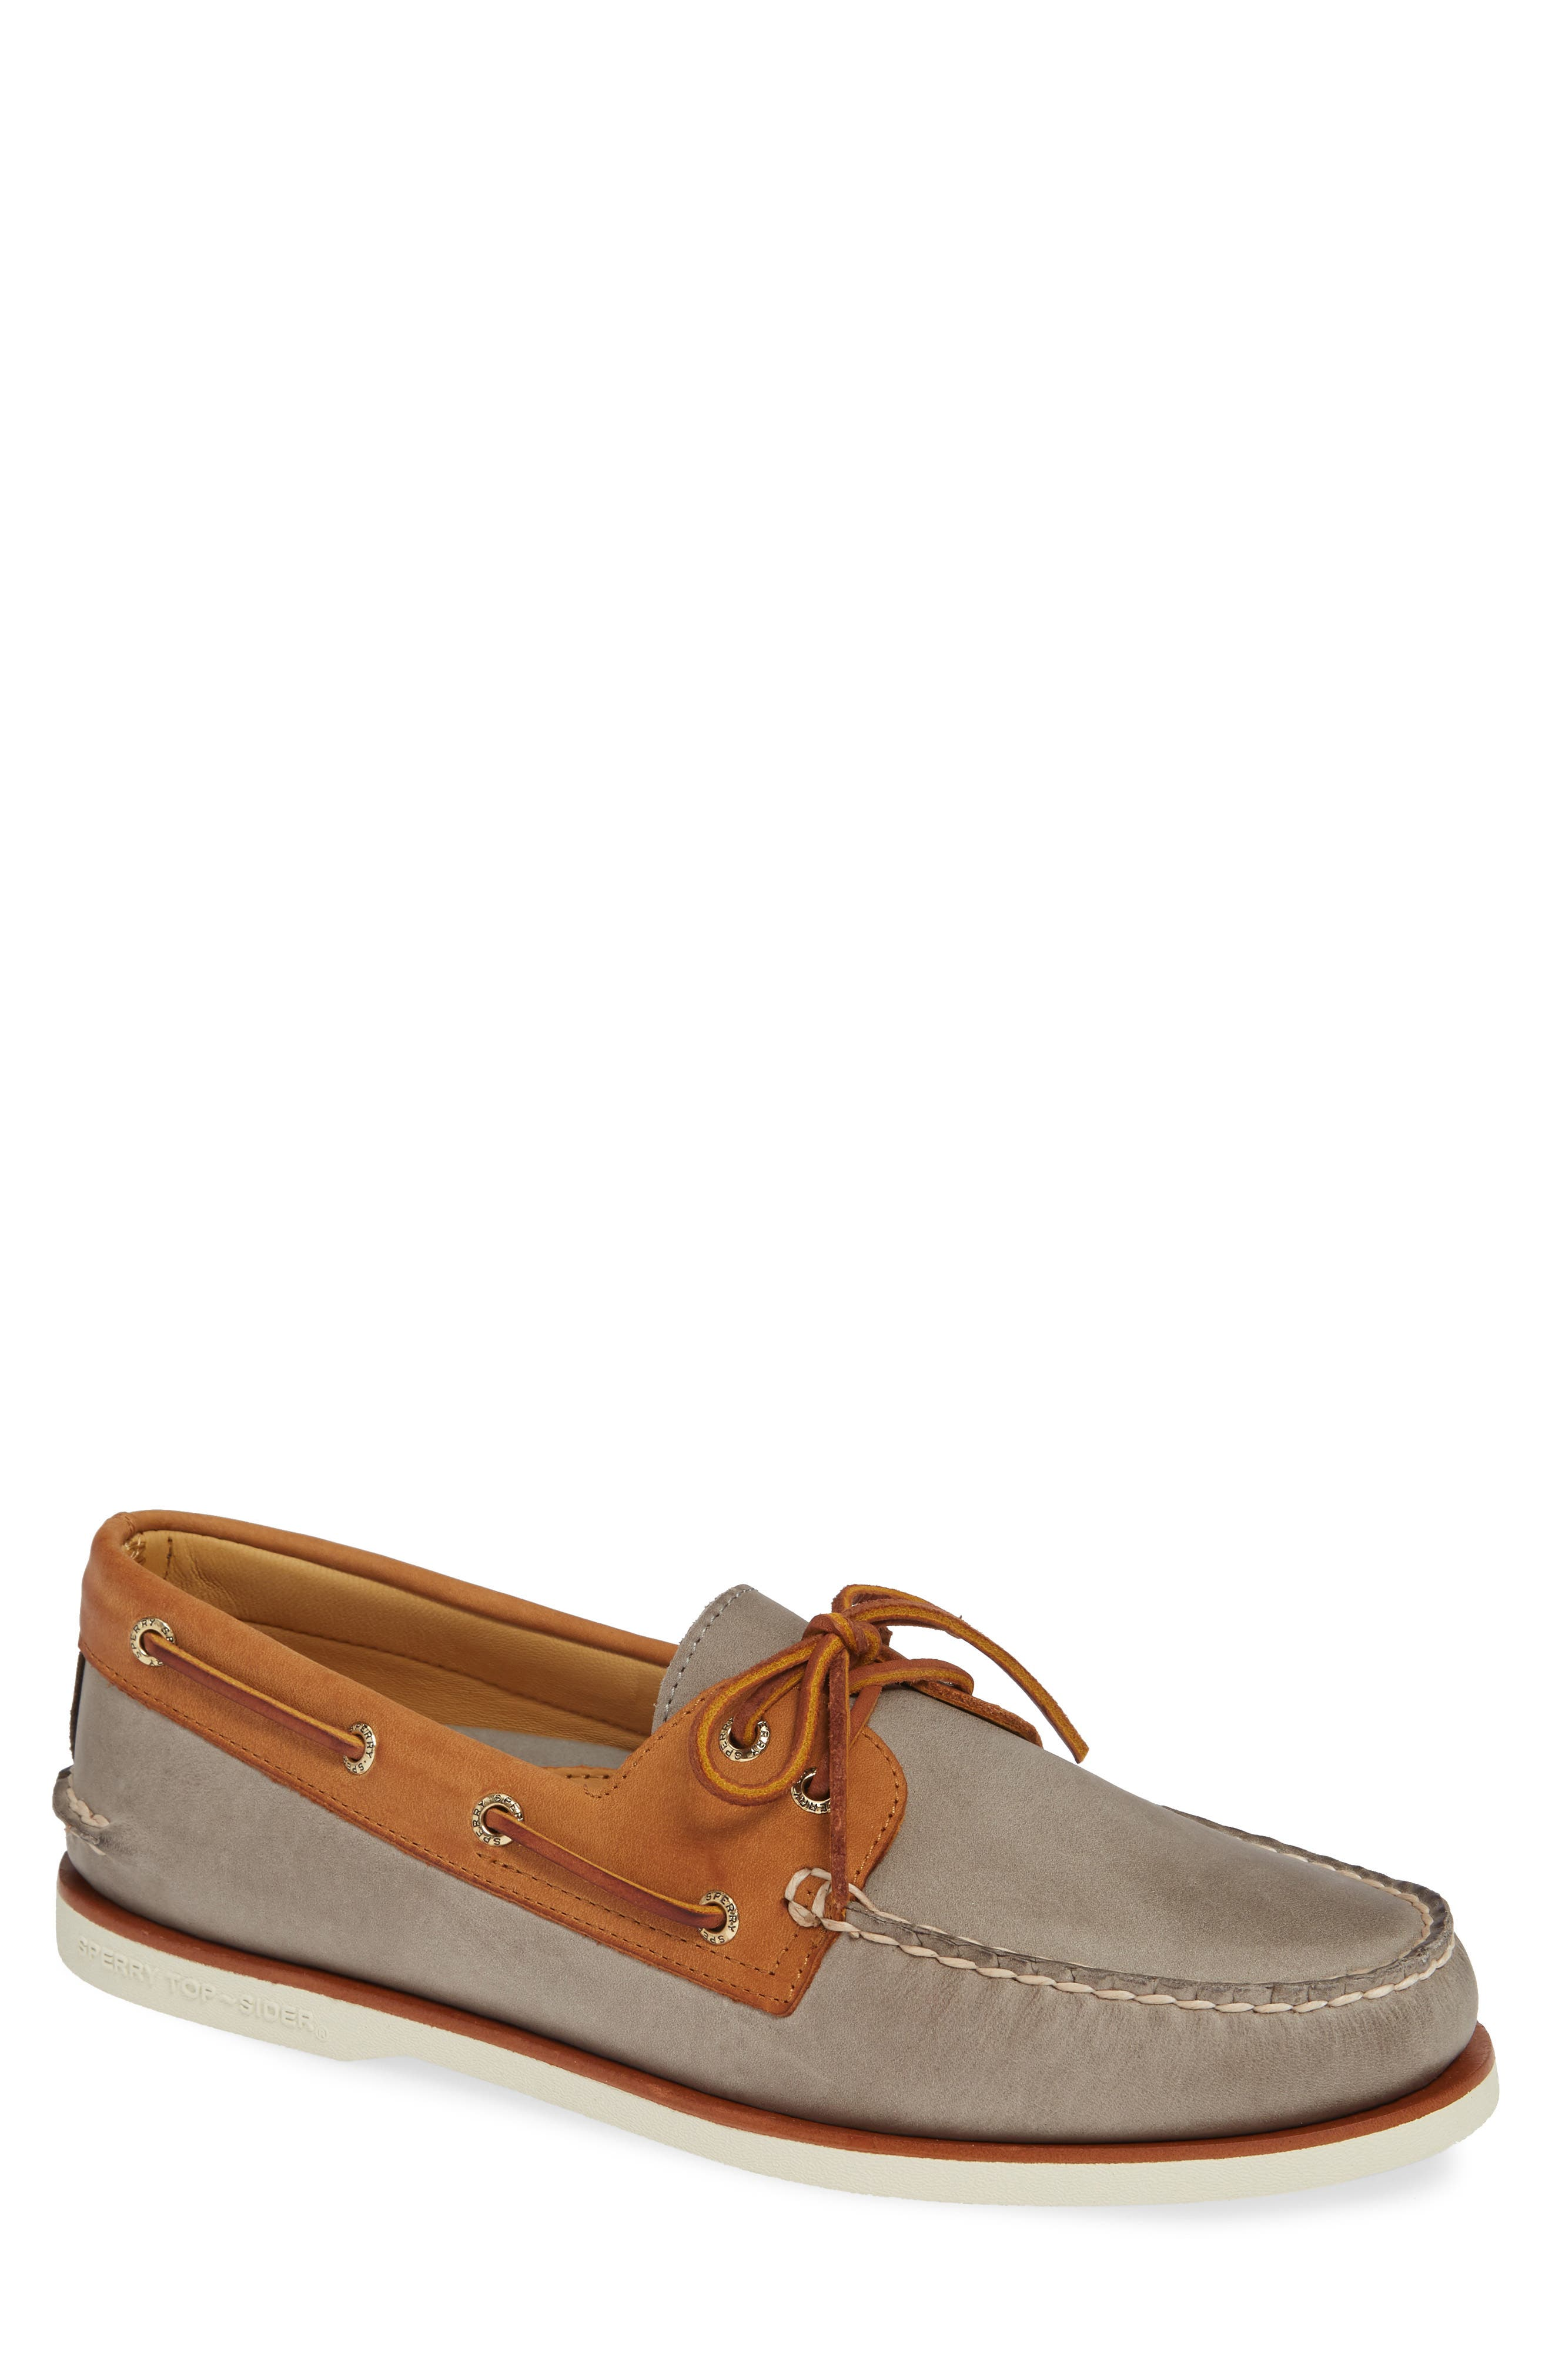 SPERRY Gold Cup AO Boat Shoe, Main, color, 020